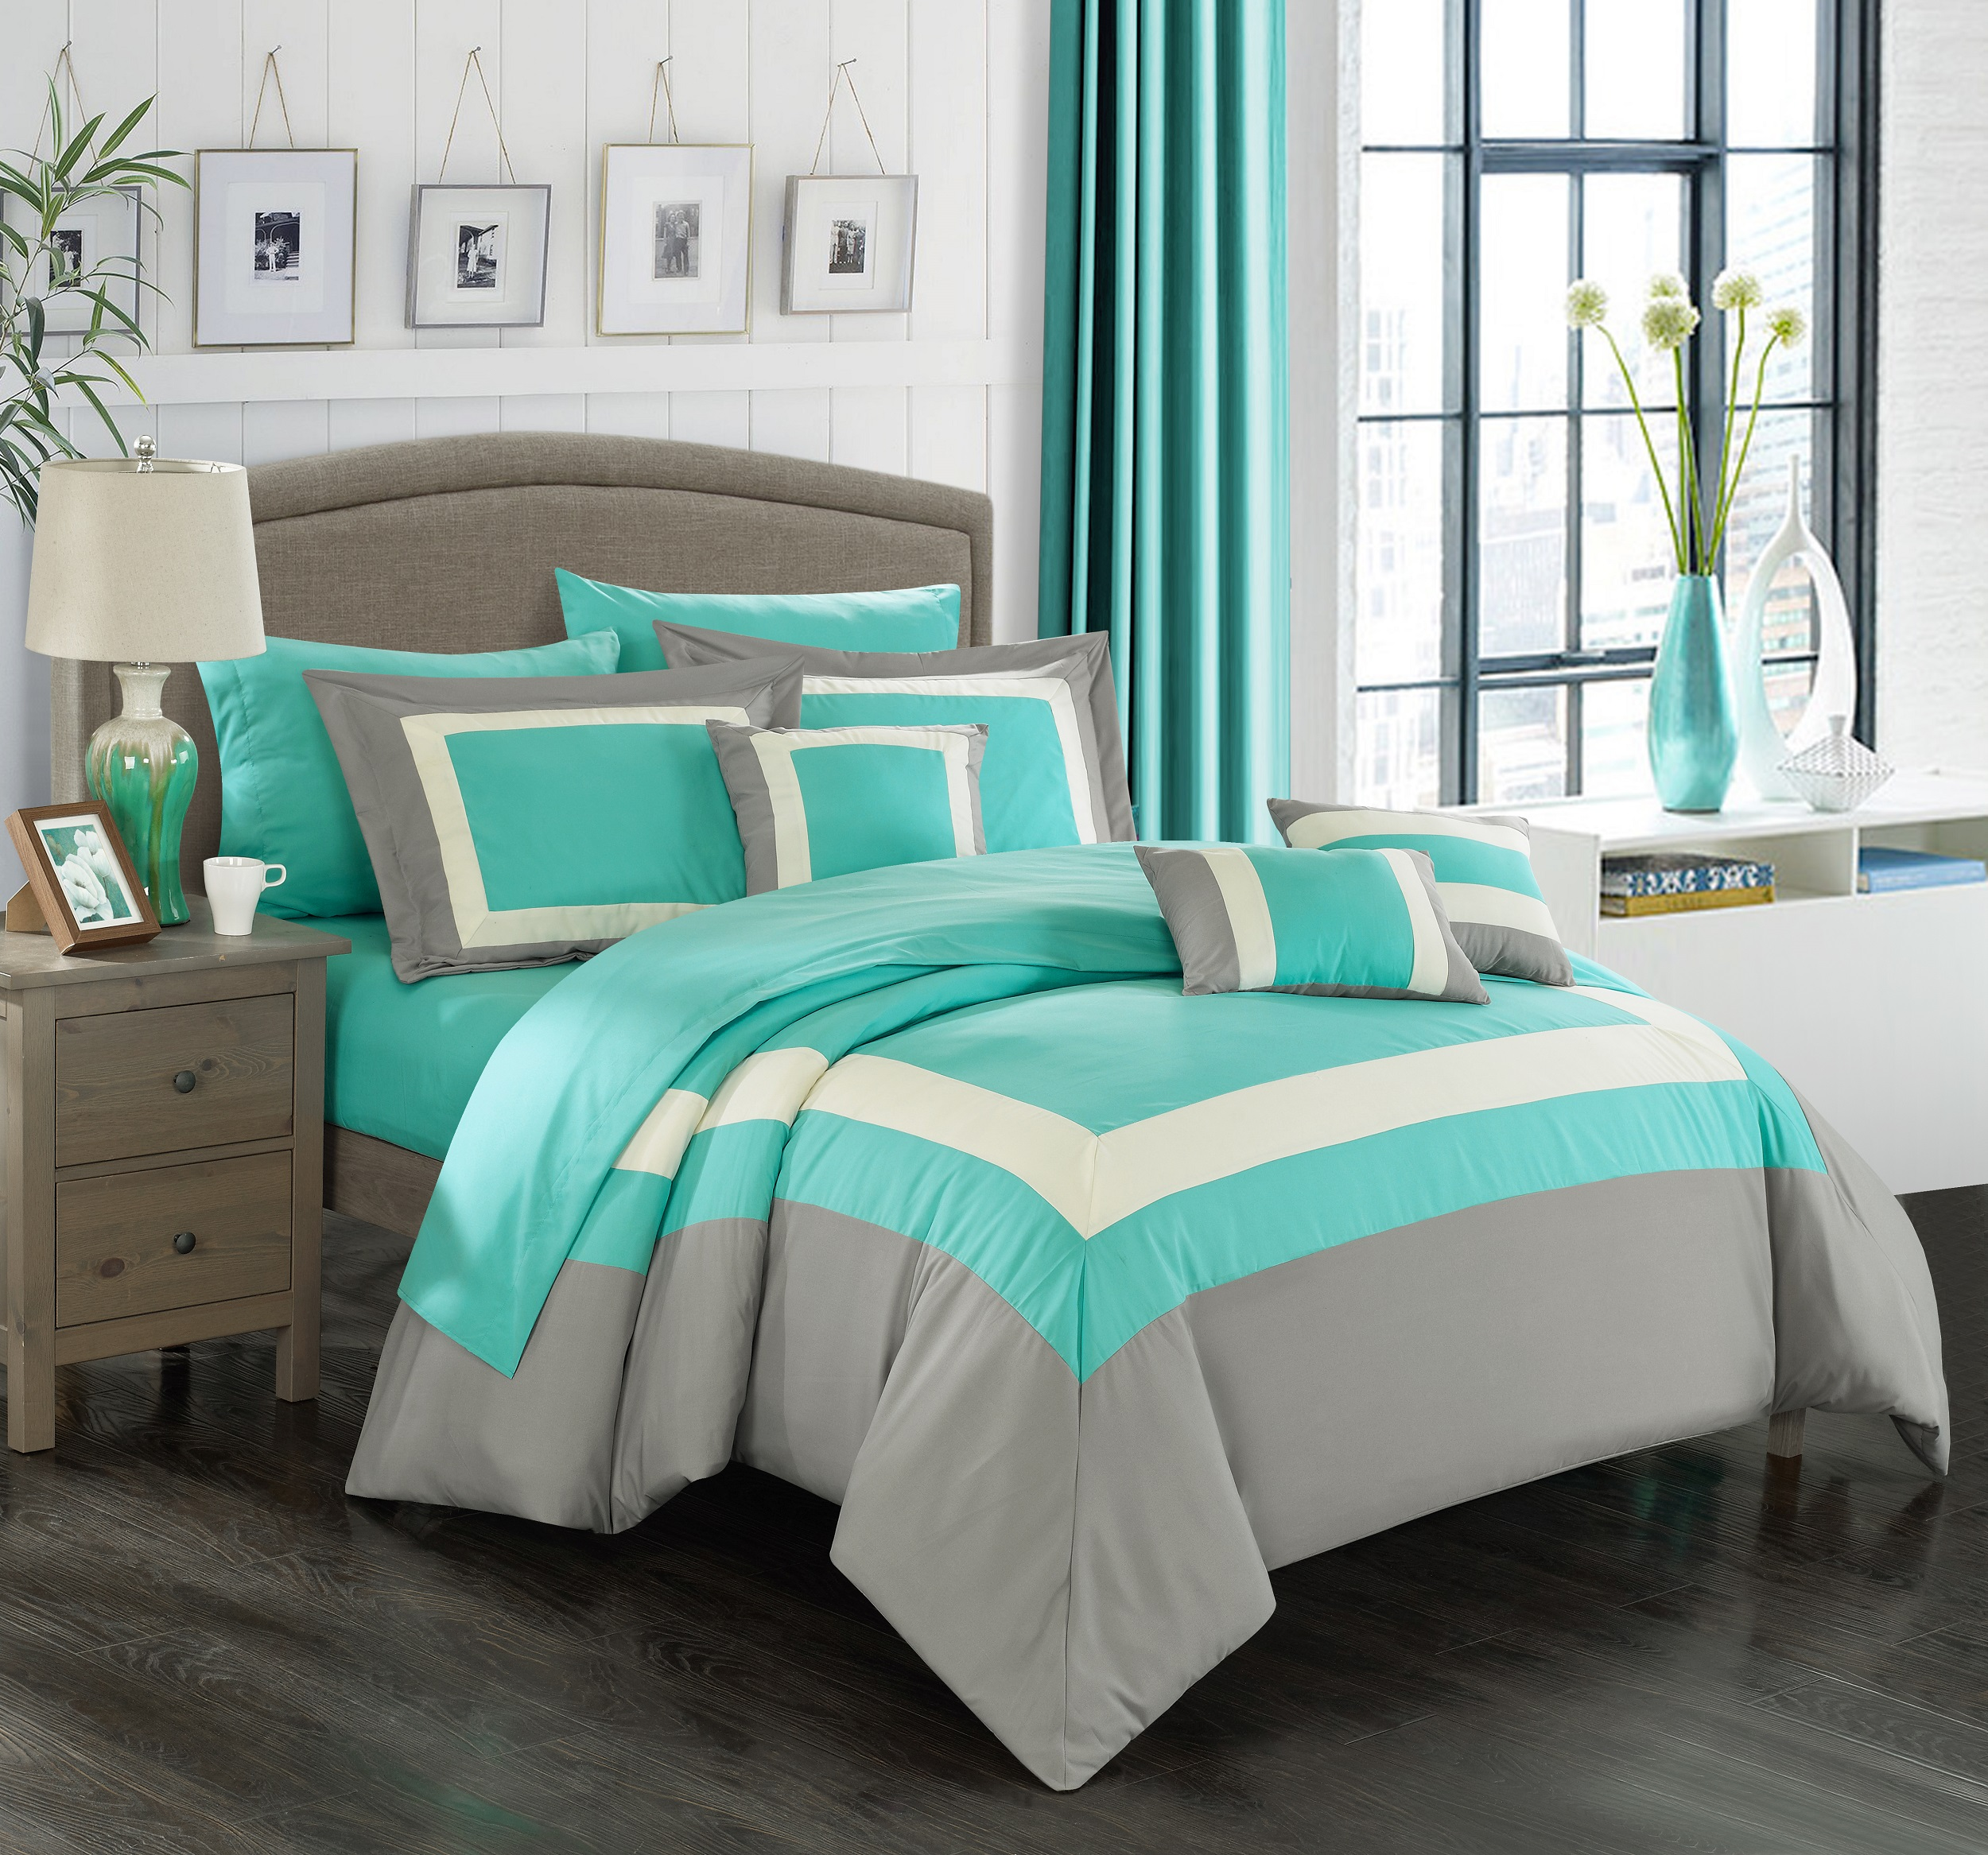 Chic Home 10-Piece Darren Complete-Pieced color block bedding, sheets collection Queen Turquoise